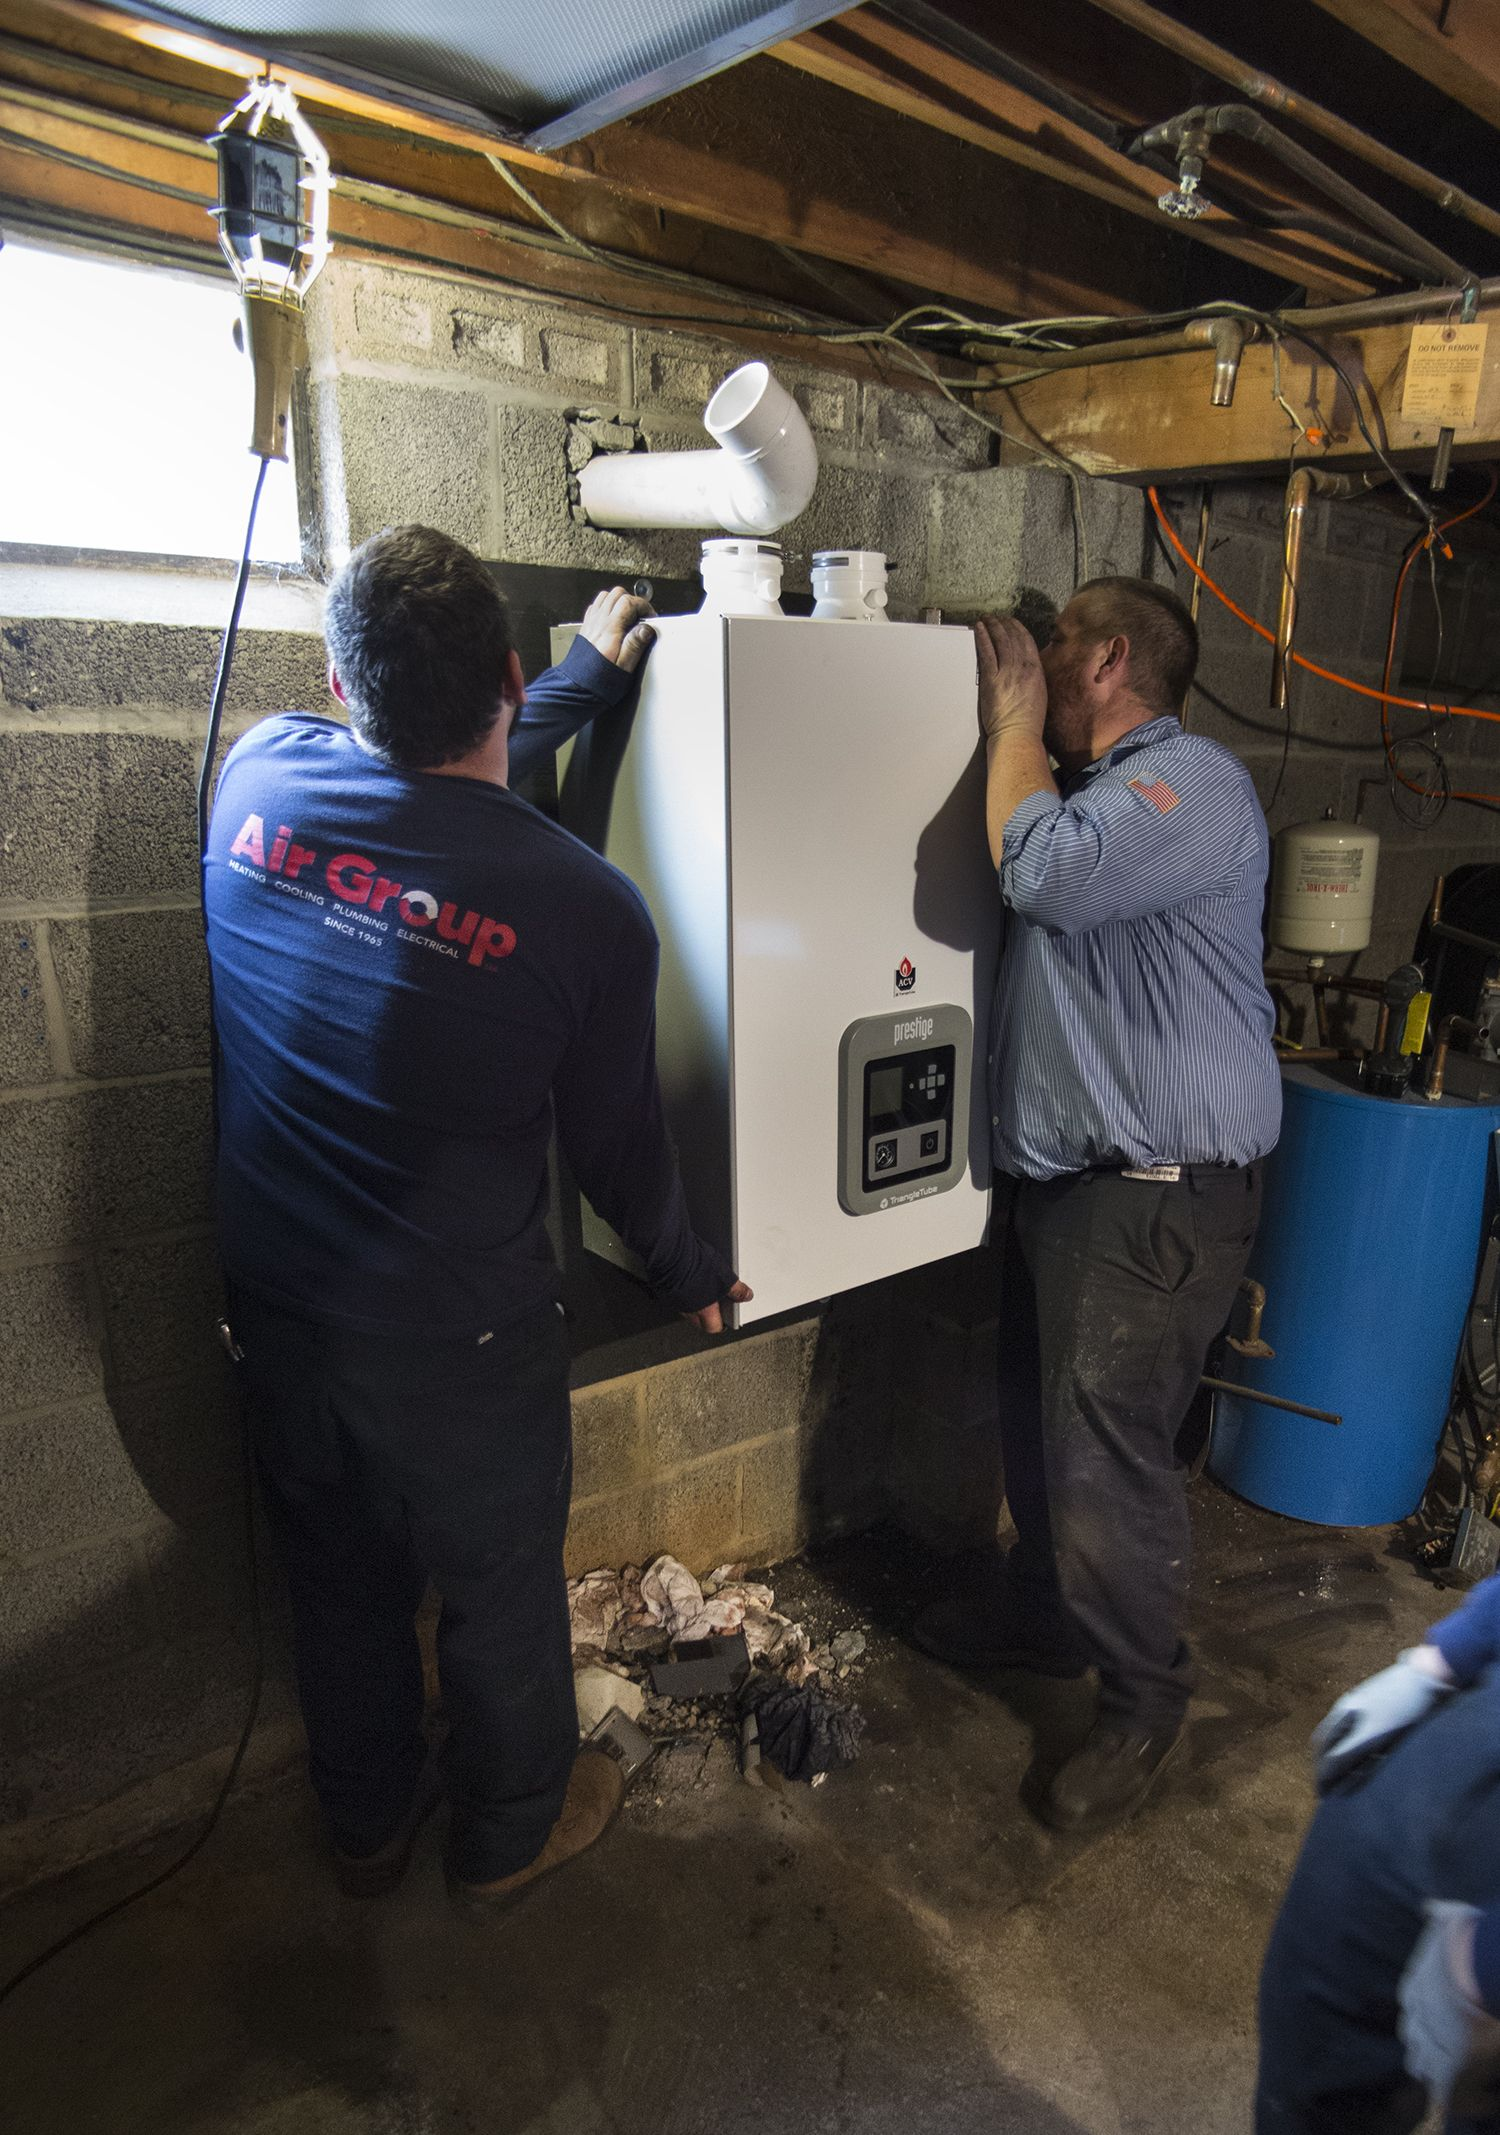 Air Group's expert technicians finishing up an oil to gas conversion by installing this Prestige Triangle Tube gas furnace.